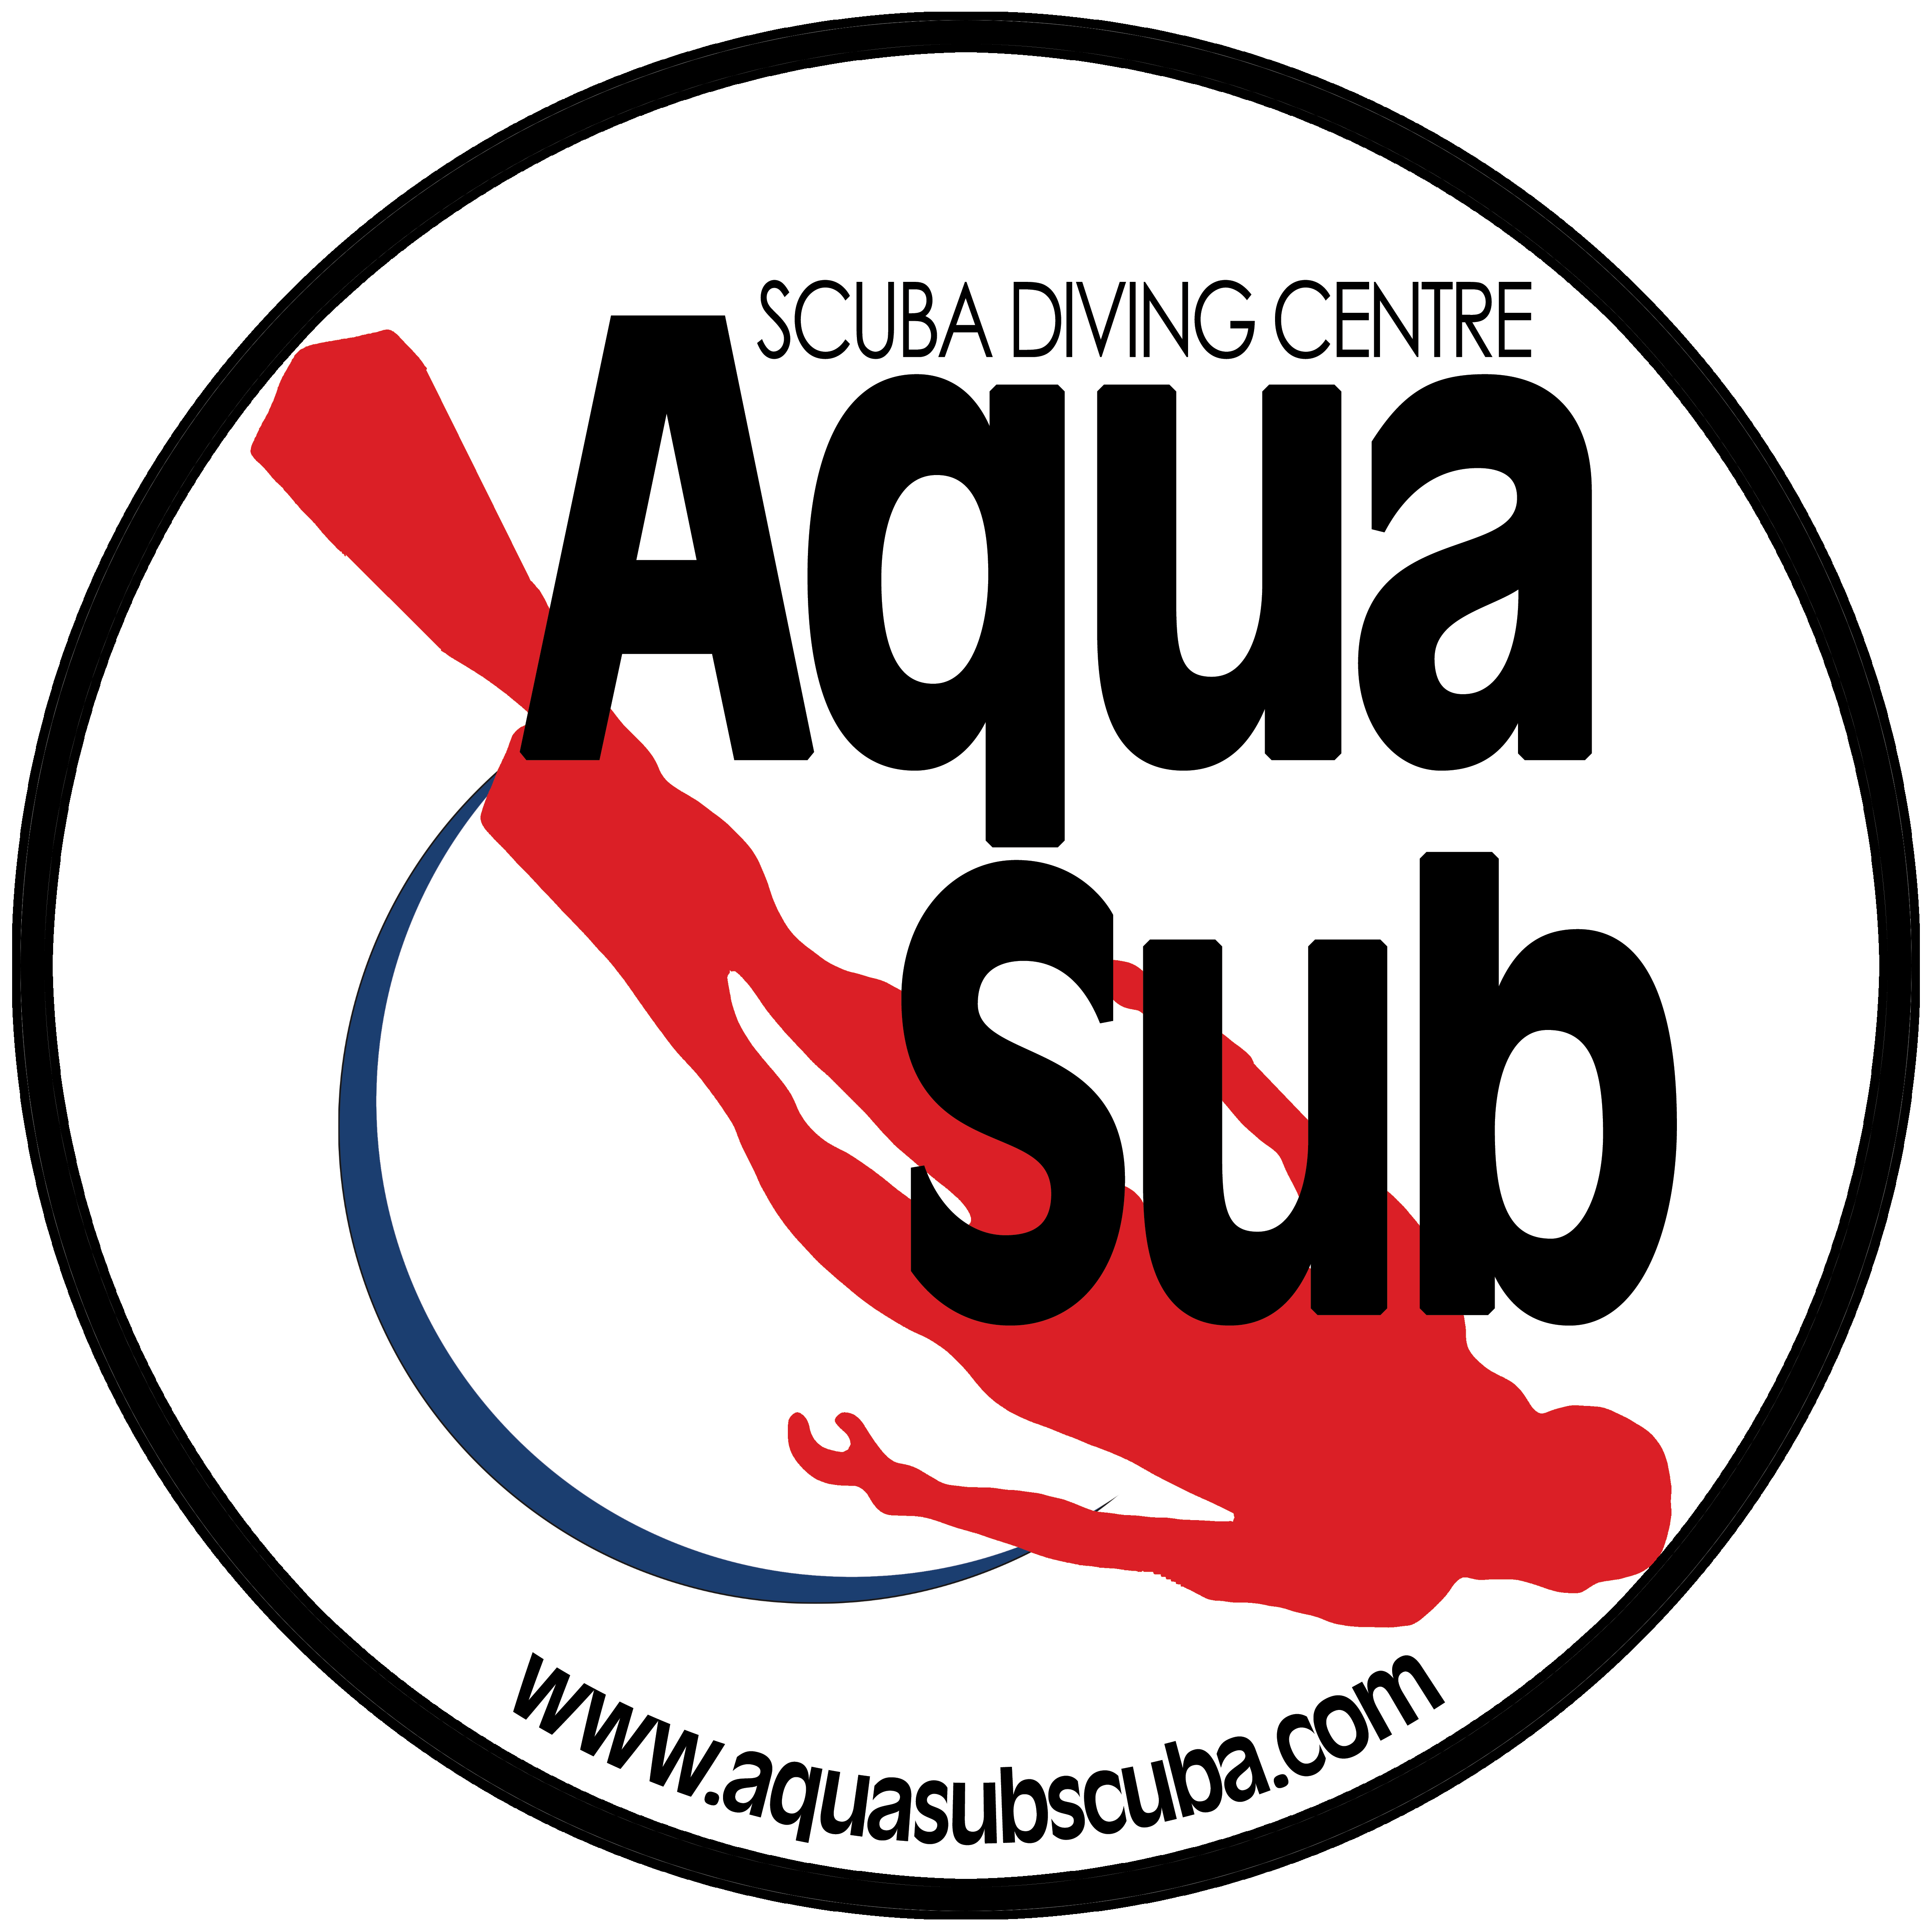 Aquasub Scuba Diving Center